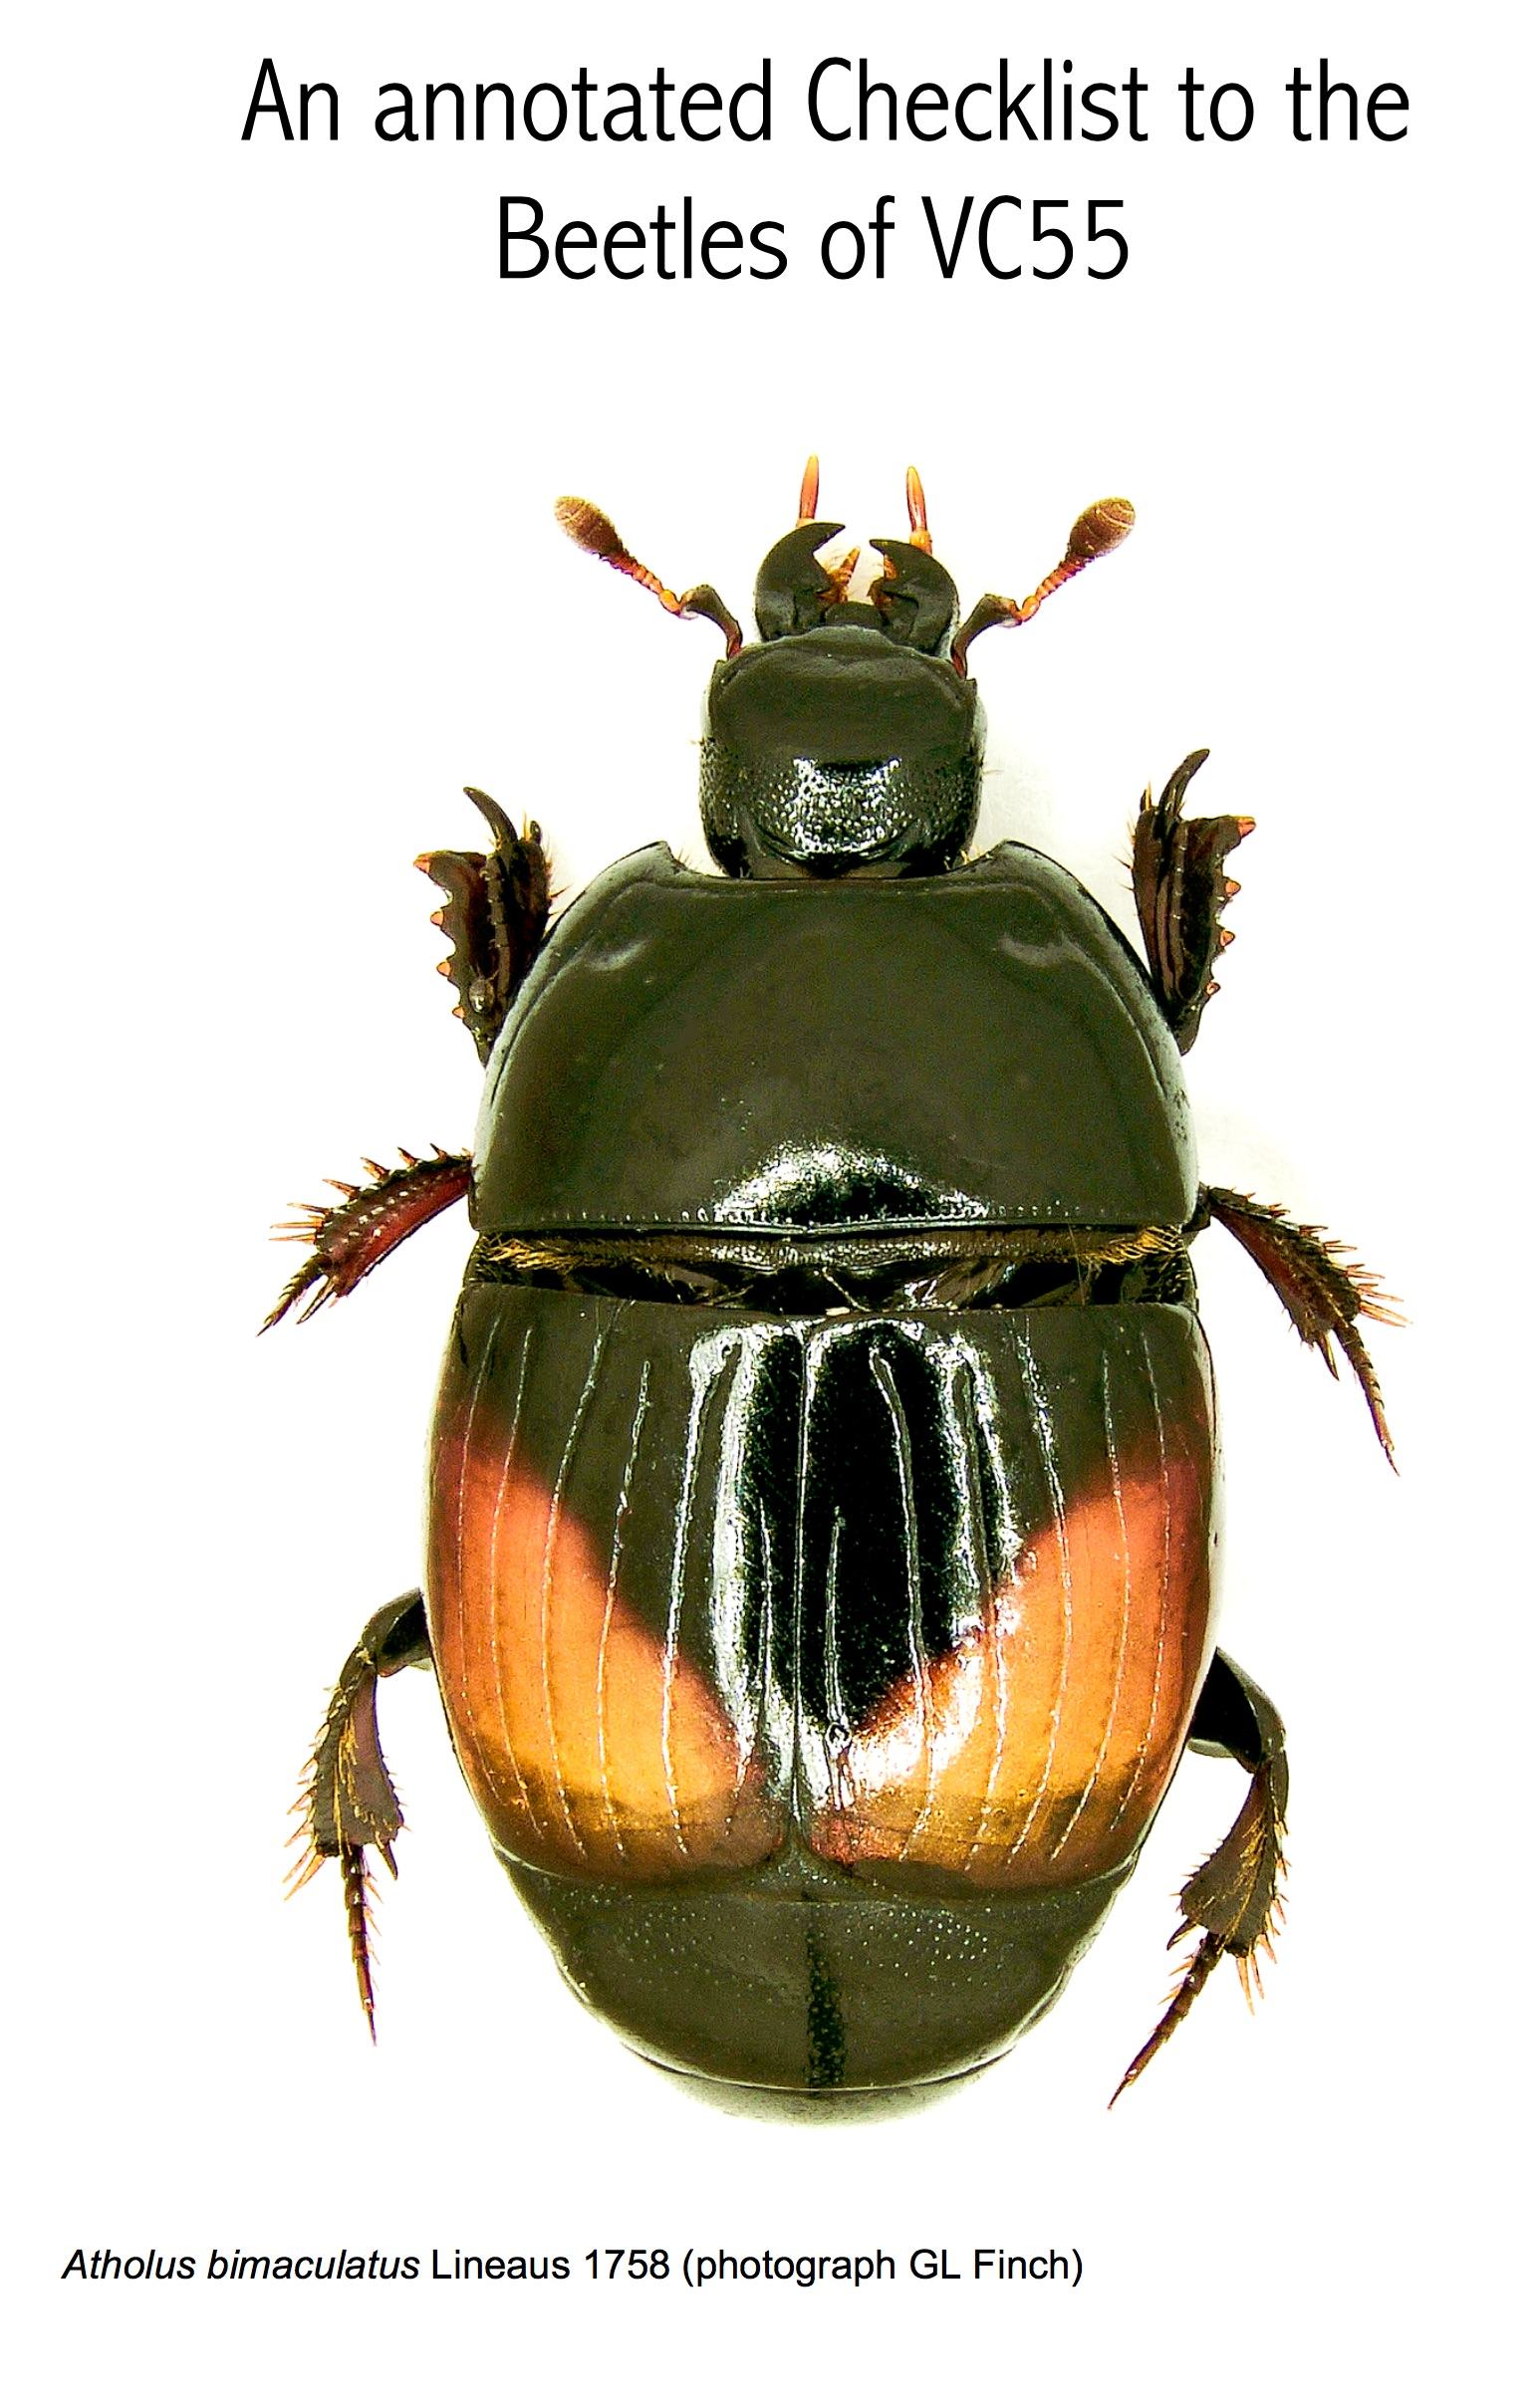 Annotated Checklist to the Beetles of VC55